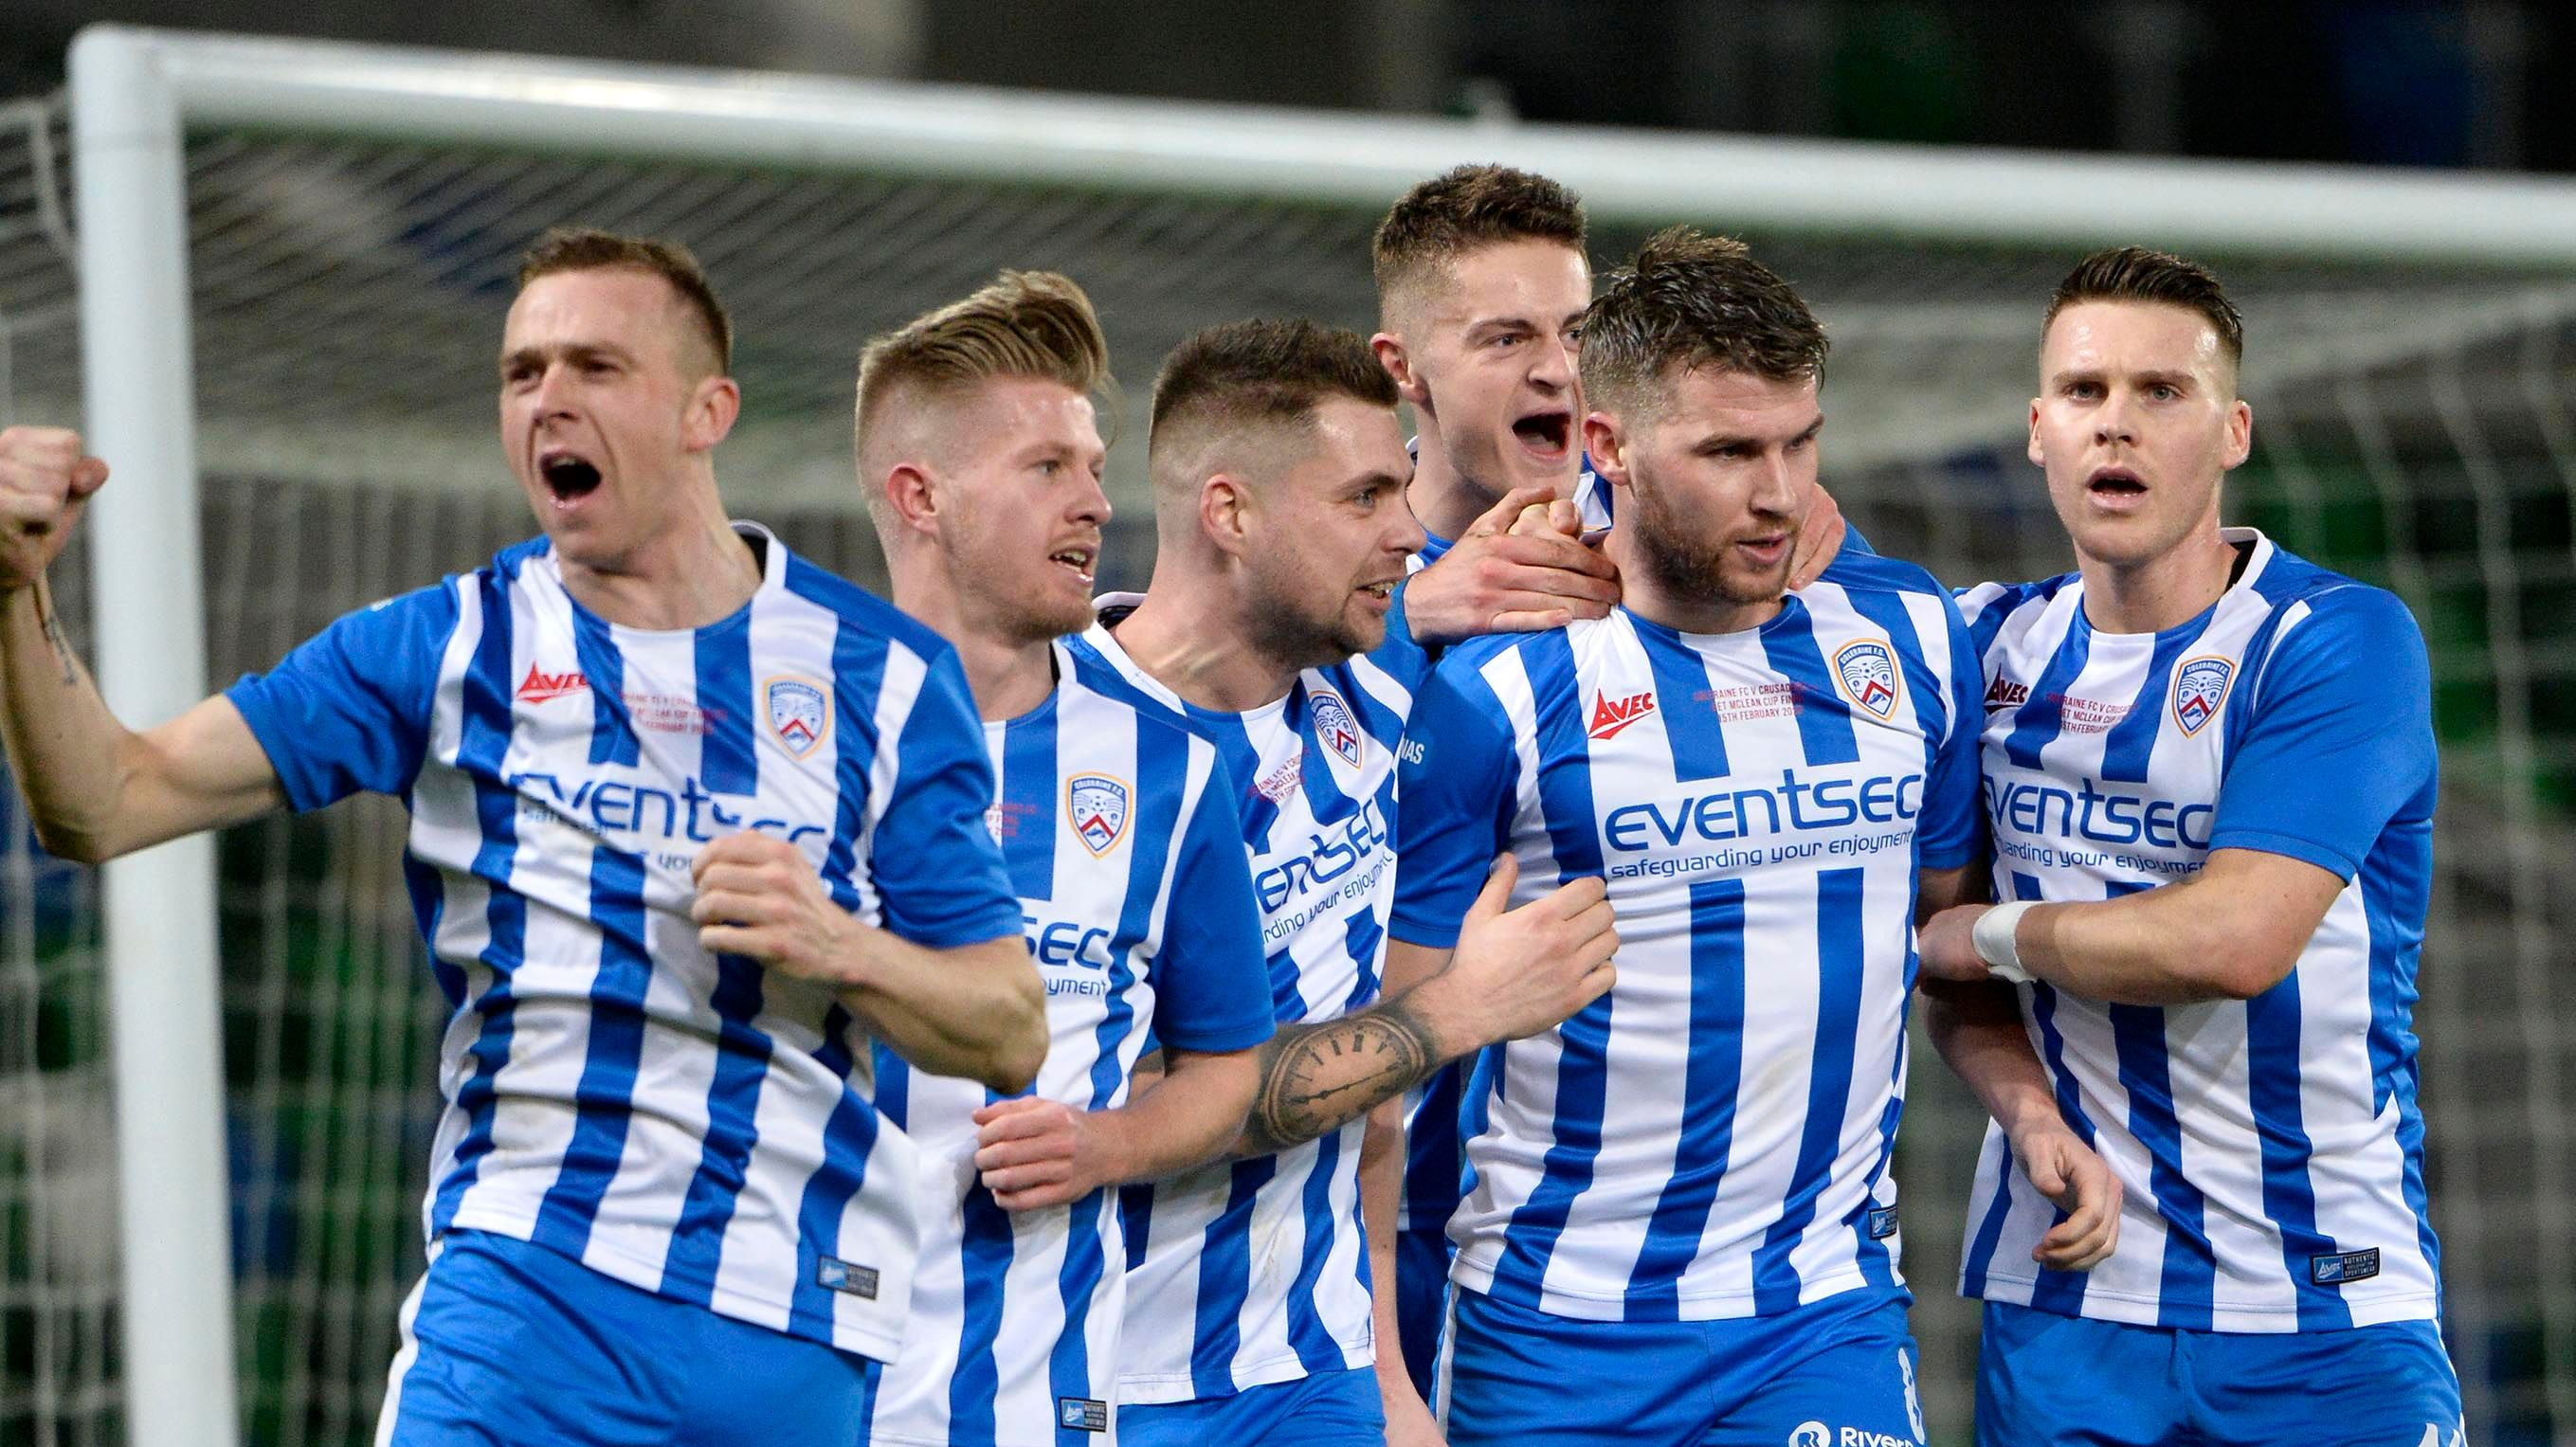 Coleraine beat Crusaders to win League Cup for first time since '88